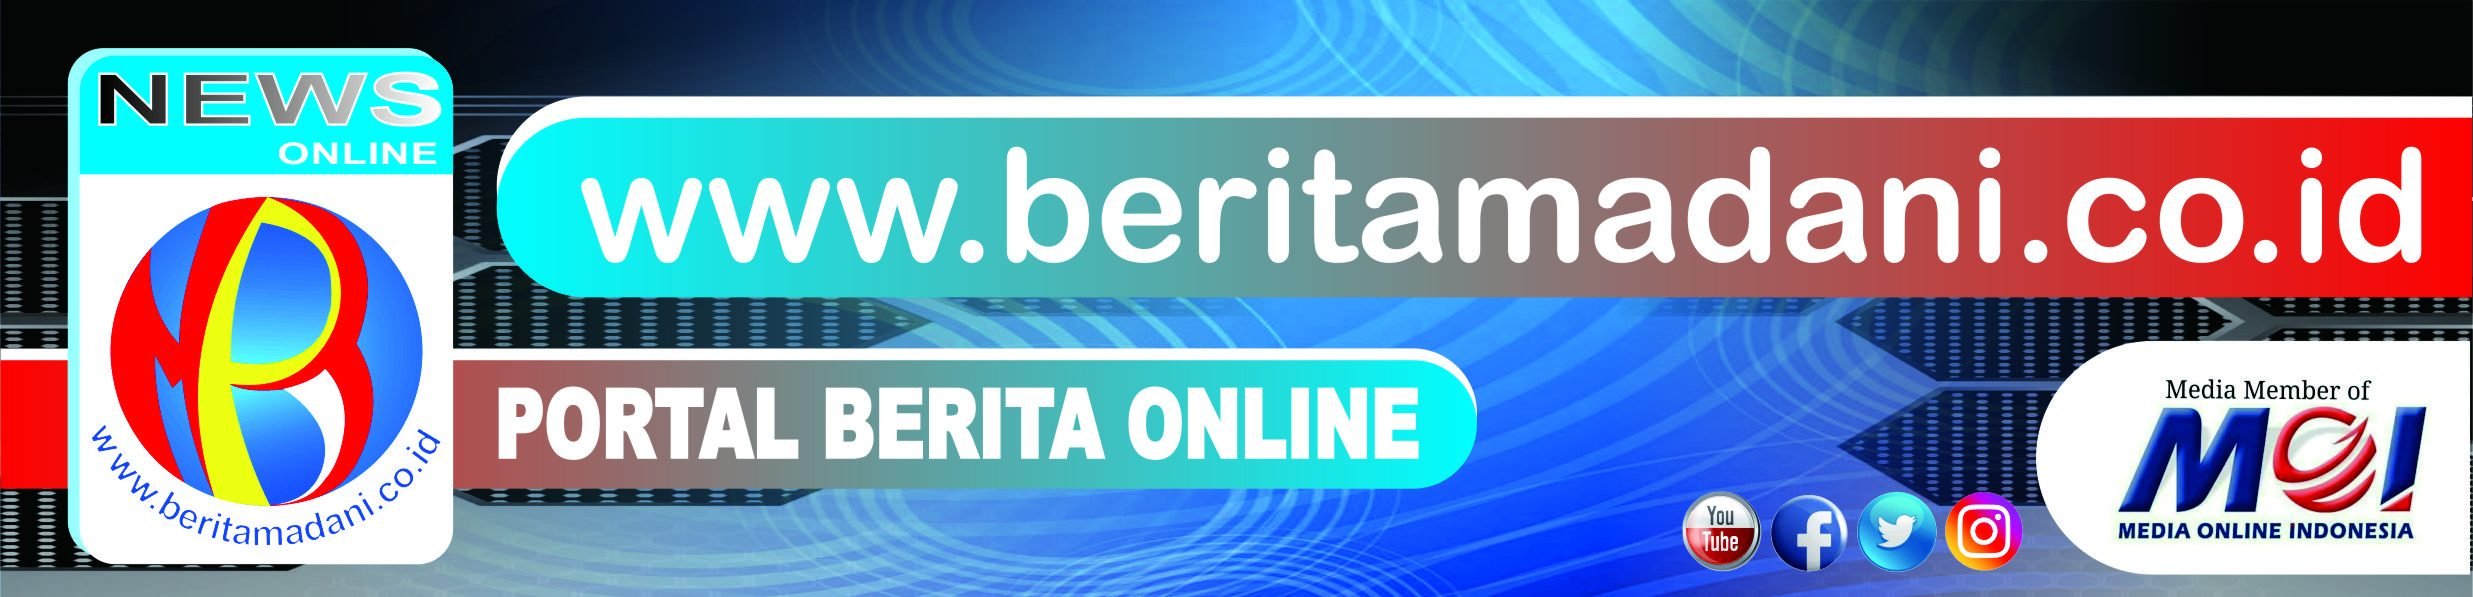 Beritamadani.co.id